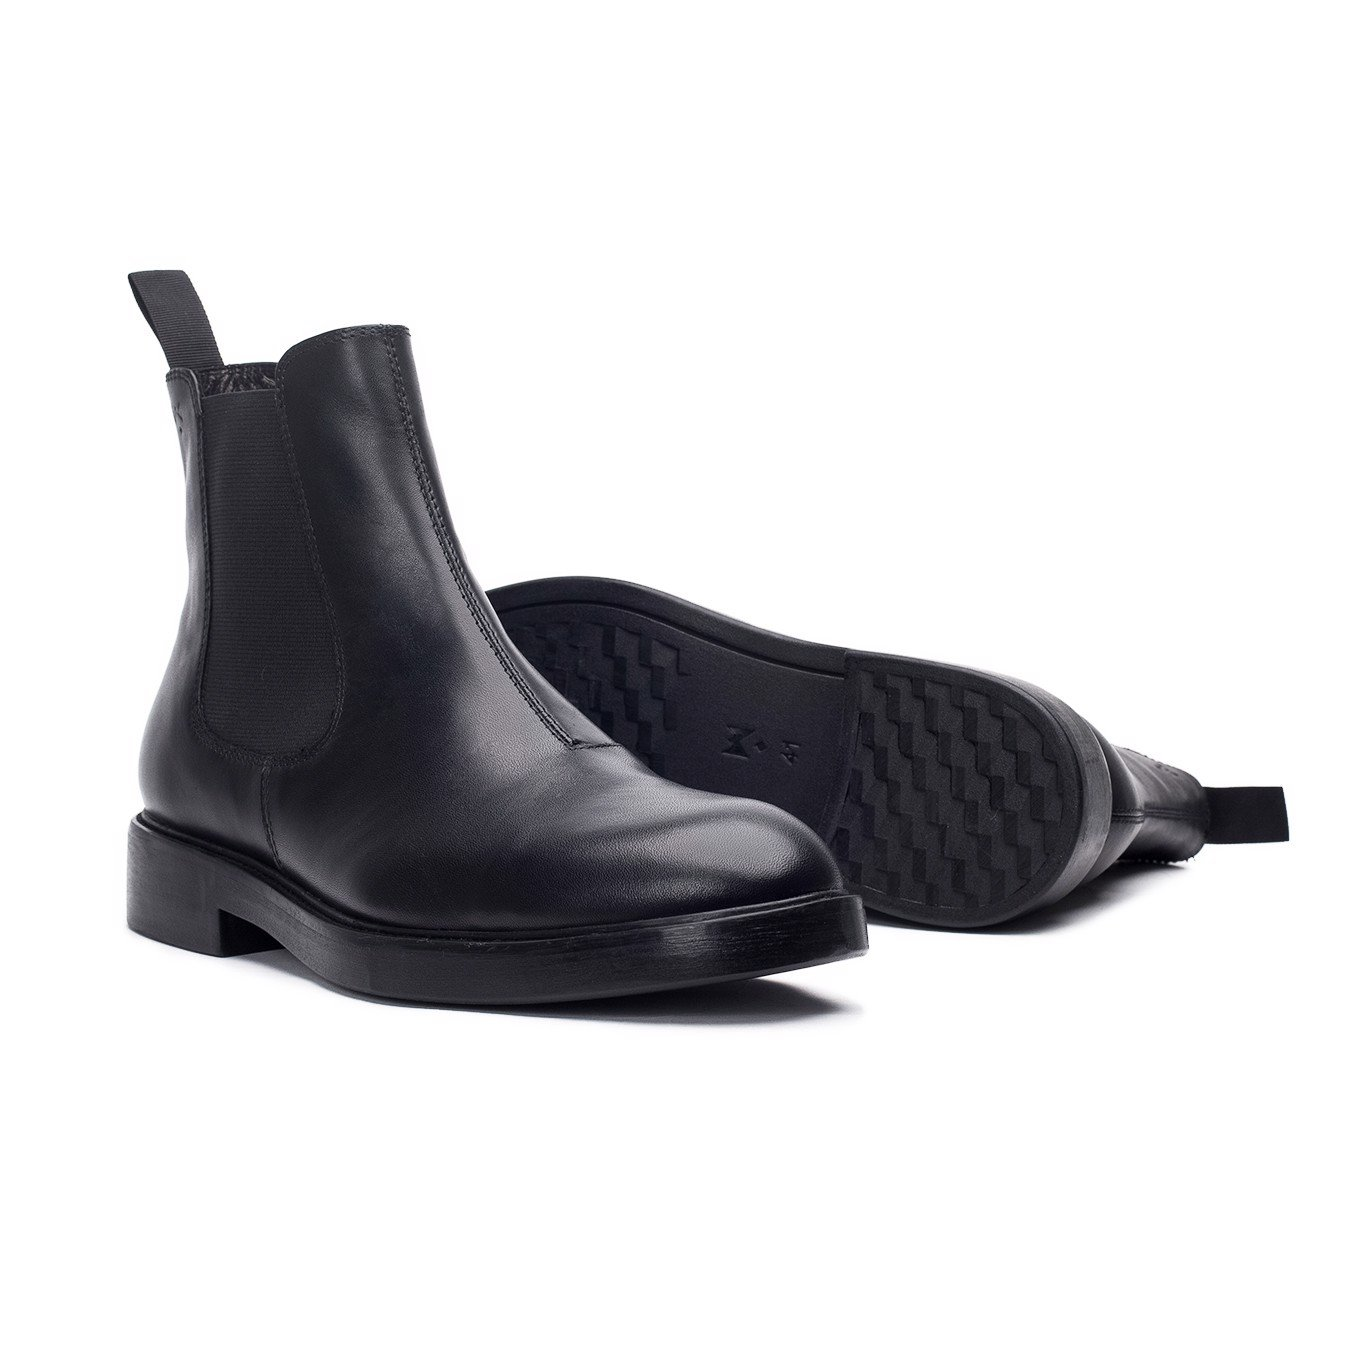 THE SHEWOLF MODERN CHELSEA BOOT - BLACK